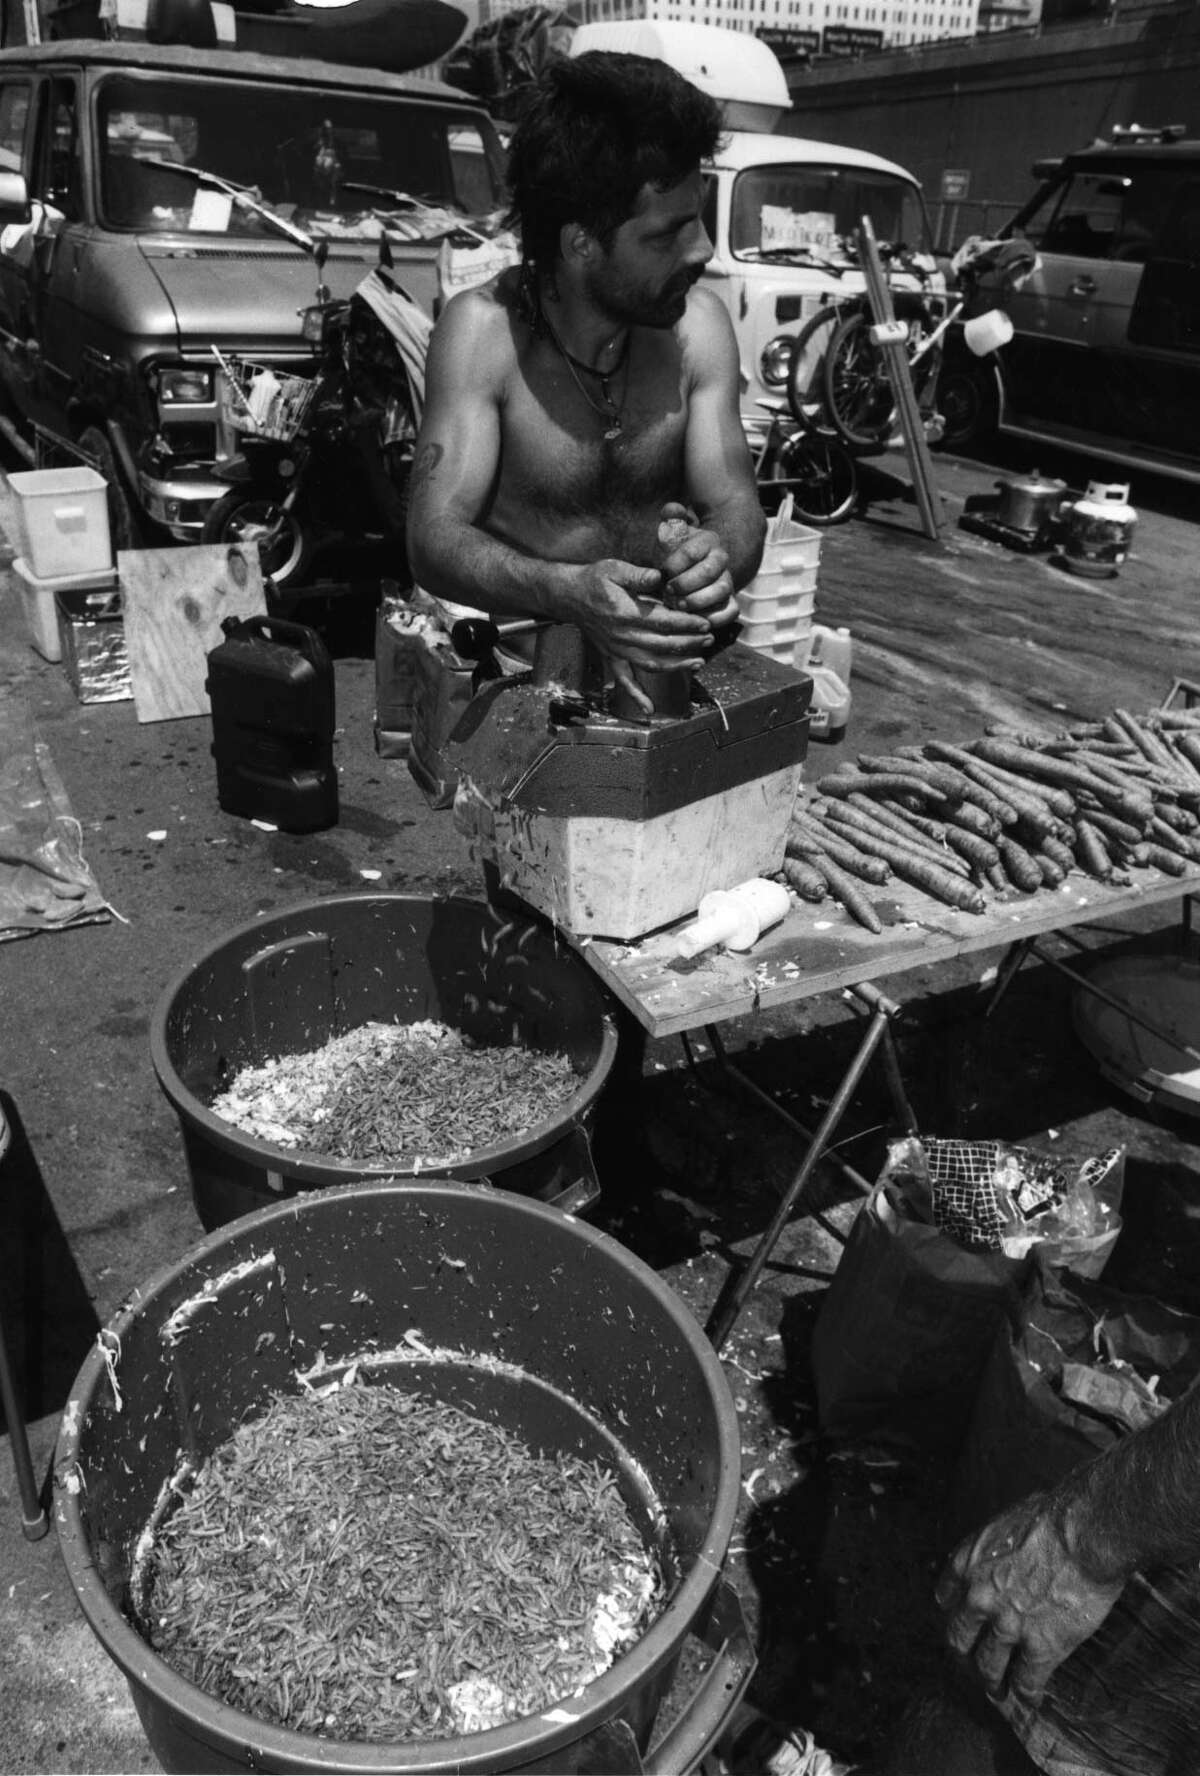 Ray Butler of Caribou, Maine, makes some Jerry Garcia egg rolls out of all natural veggies in Albany on the day the Grateful Dead played the Knickerbocker Arena. 6/12/1992.